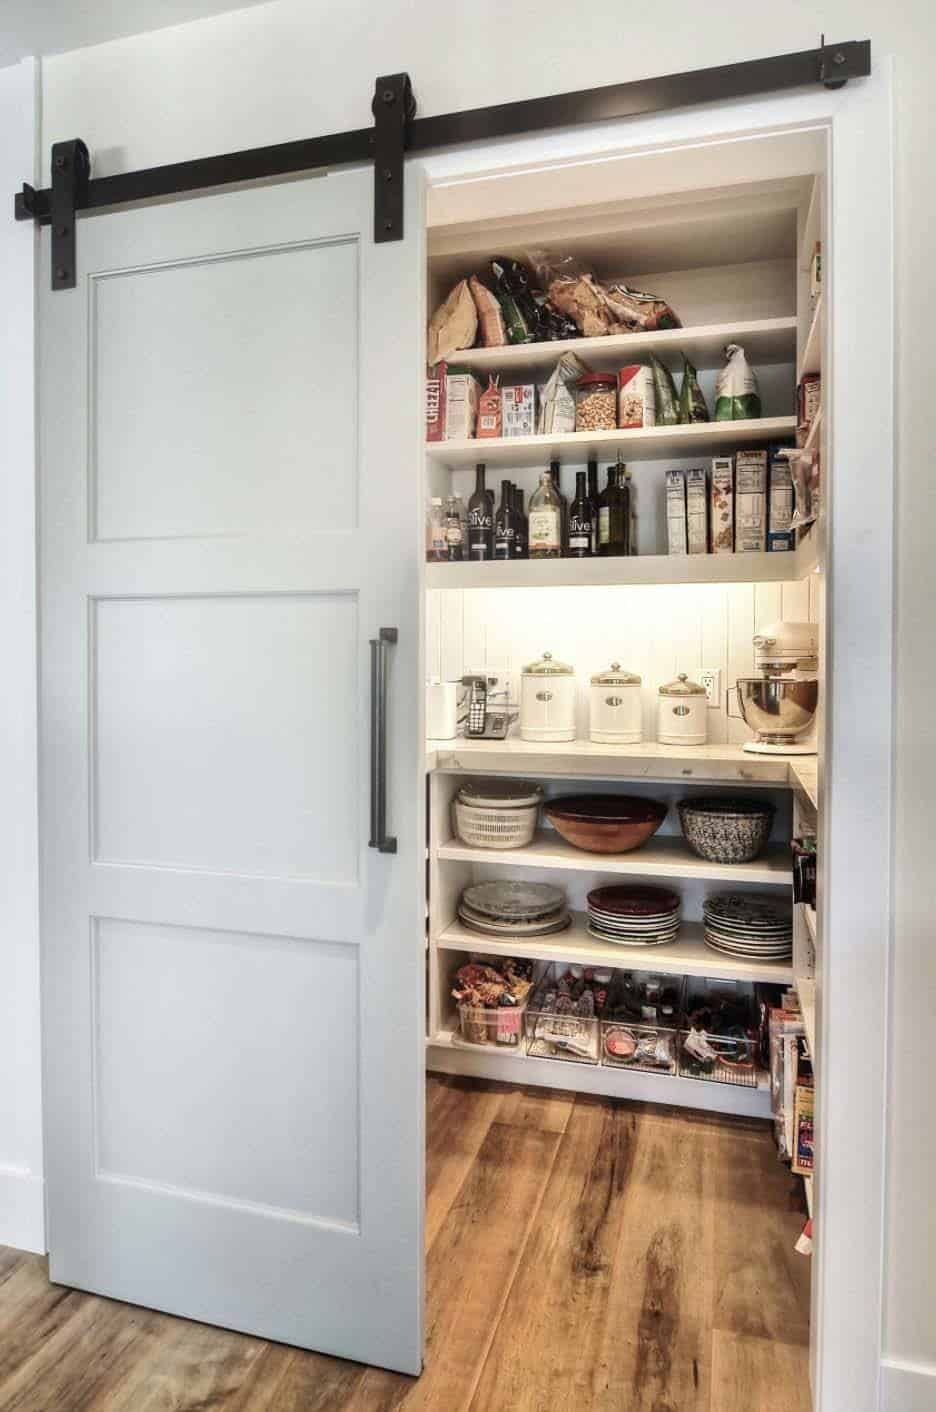 35 Clever ideas to help organize your kitchen pantry - Pantry design, Kitchen design, Kitchen remodel, Farmhouse pantry, Diy pantry, Bathroom design - When designing your kitchen pantry, its not always about aesthetics, its more about practicality and functionality, pantries help you to keep organized